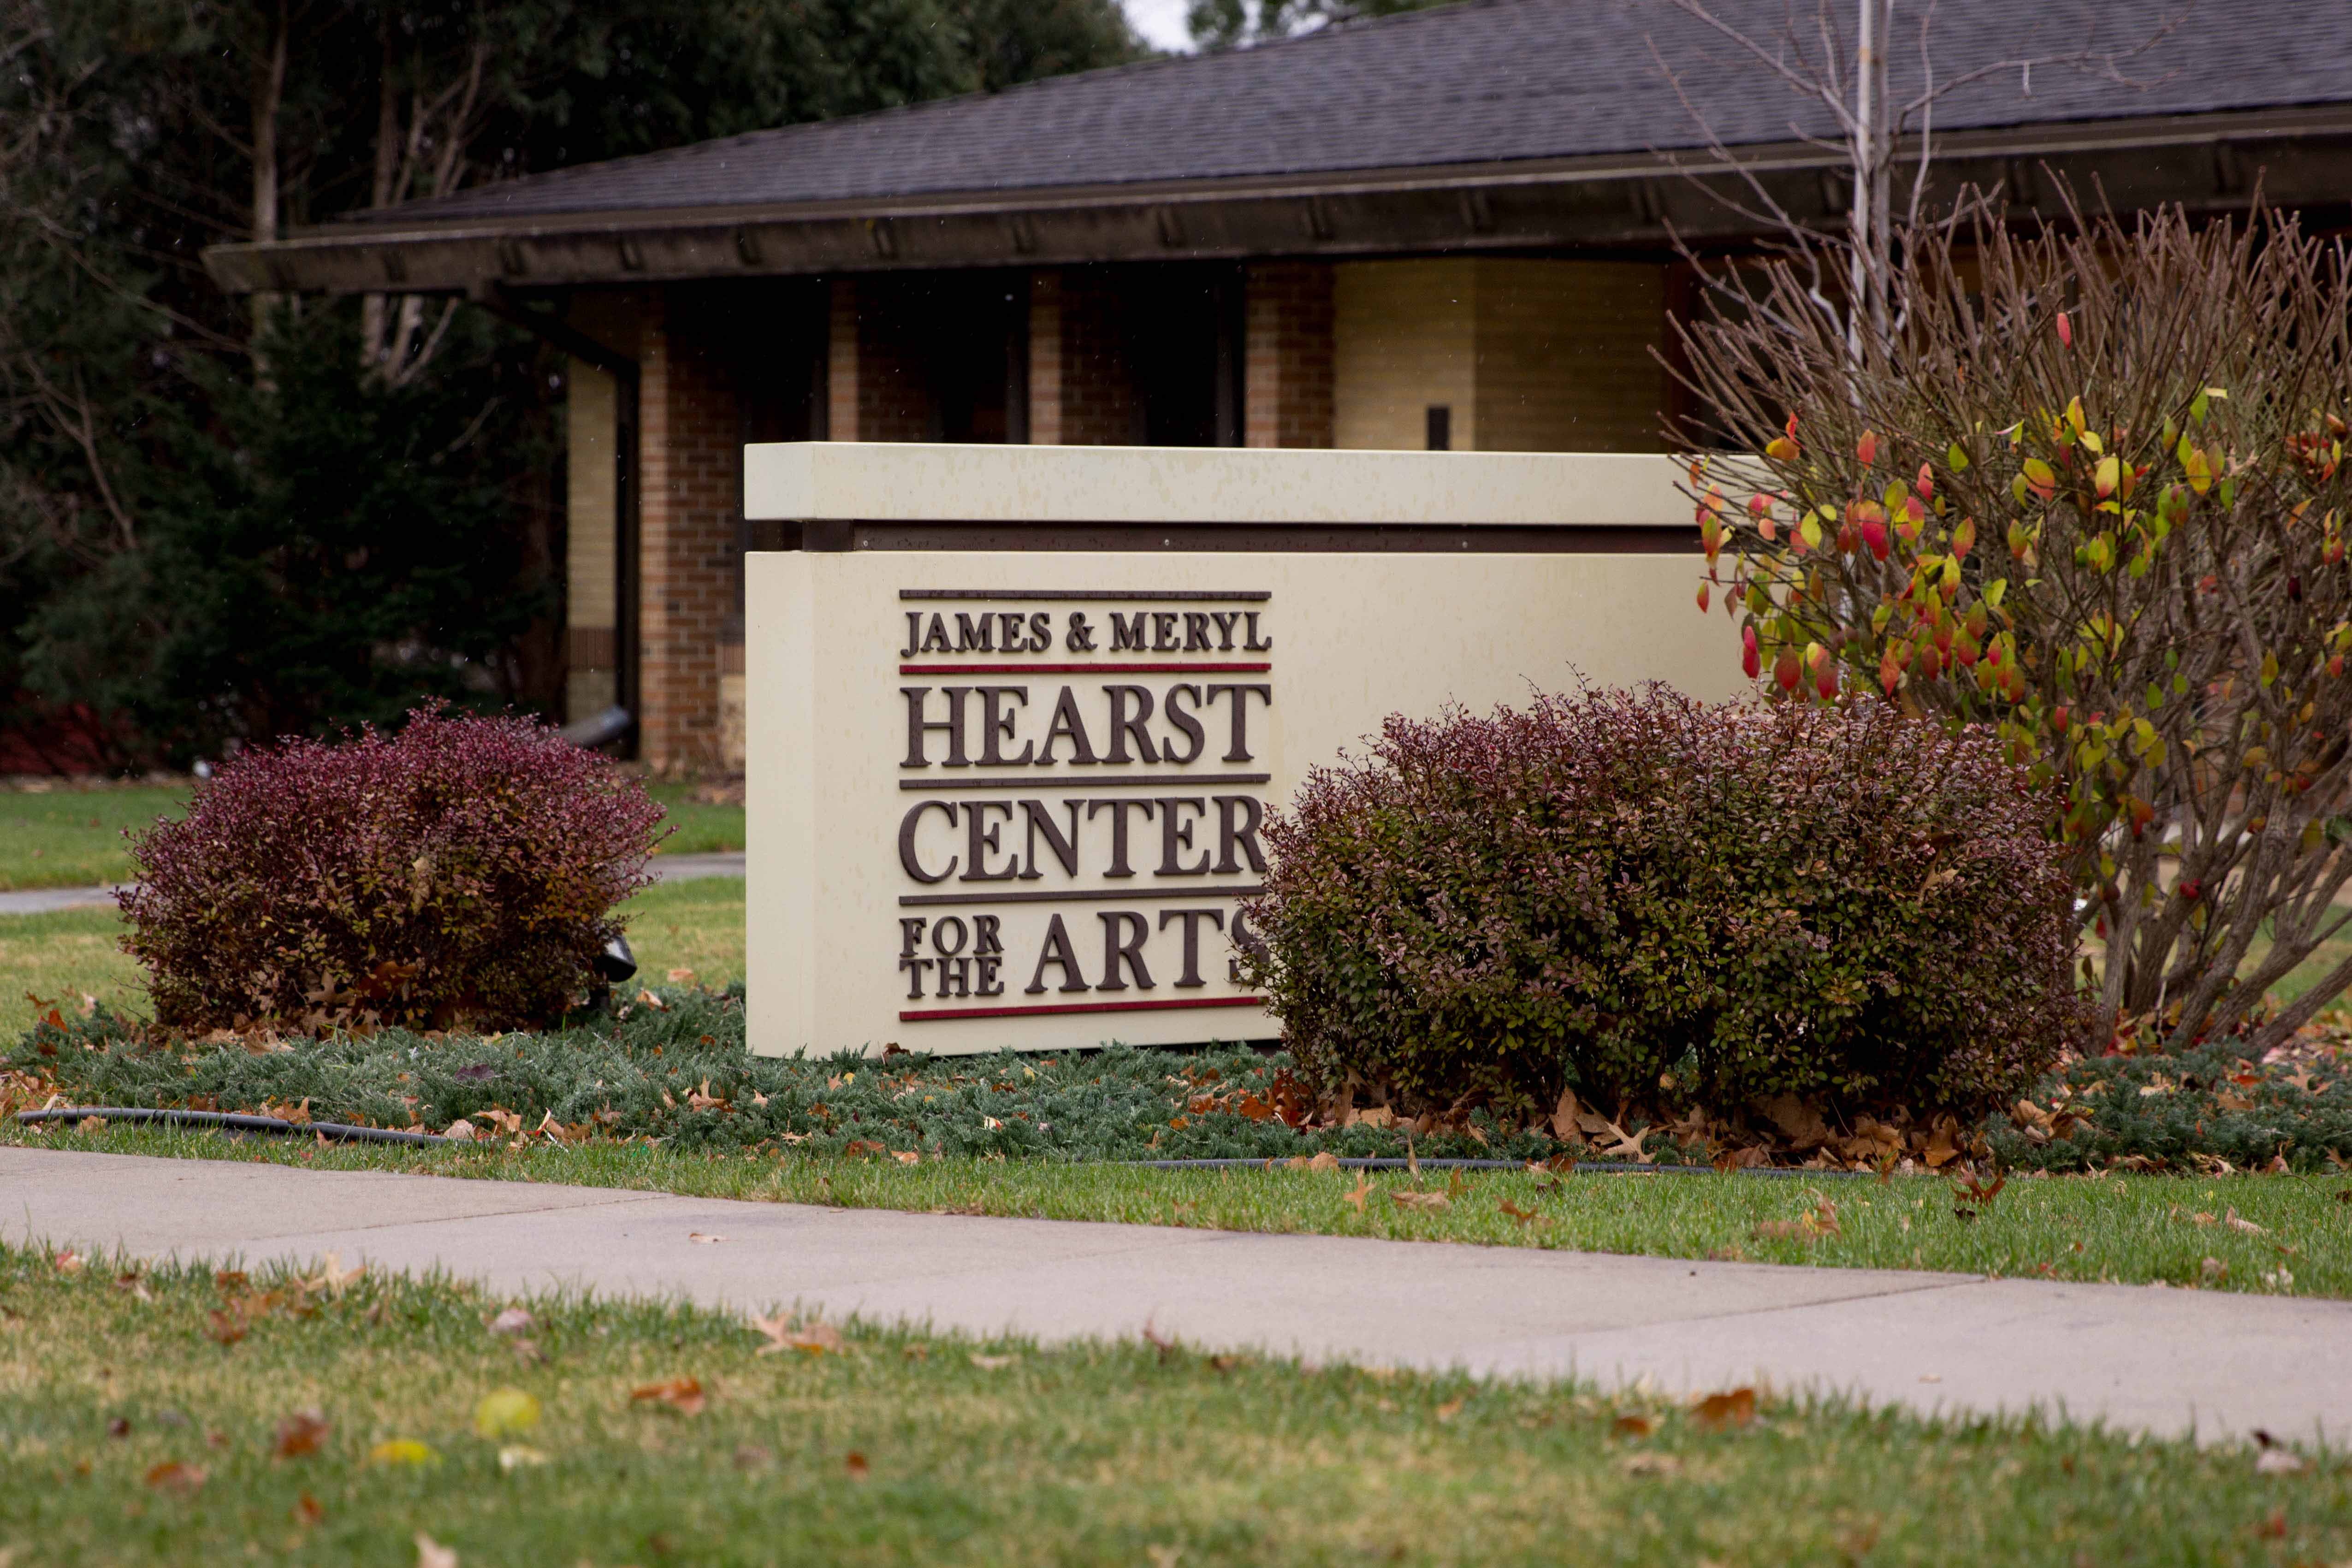 The Hearst Center for the Arts is located at 304 W. Seerly Boulevard several blocks away from campus. Several holiday concerts will occur here ranging from jazz to more traditional styles.